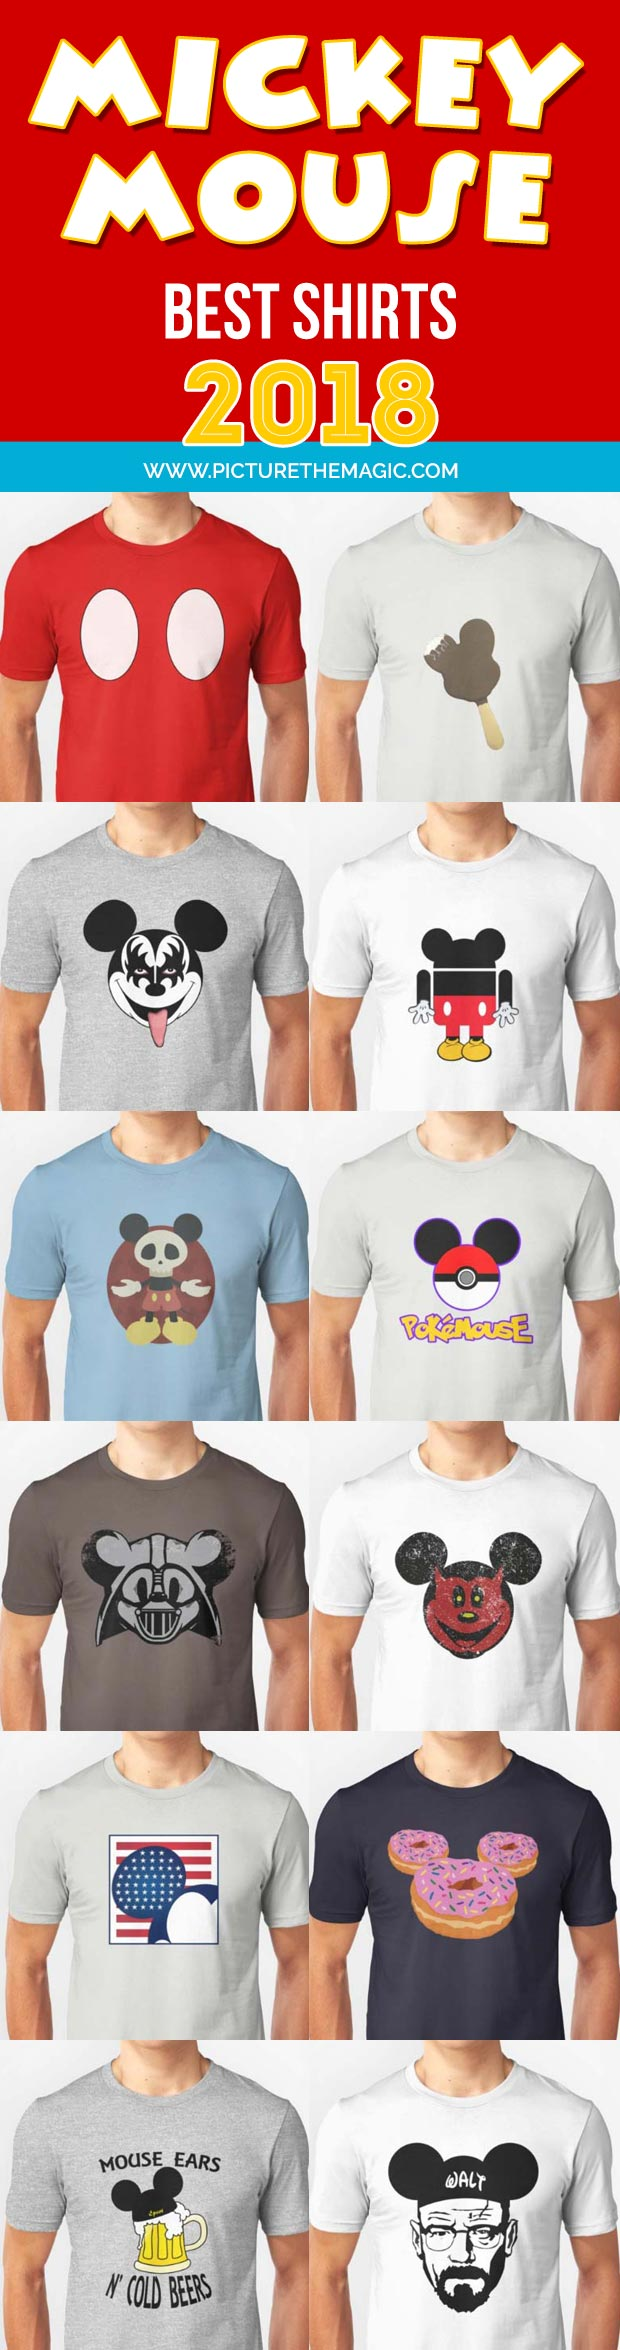 Mickey Mouse Best Shirts for 2018!